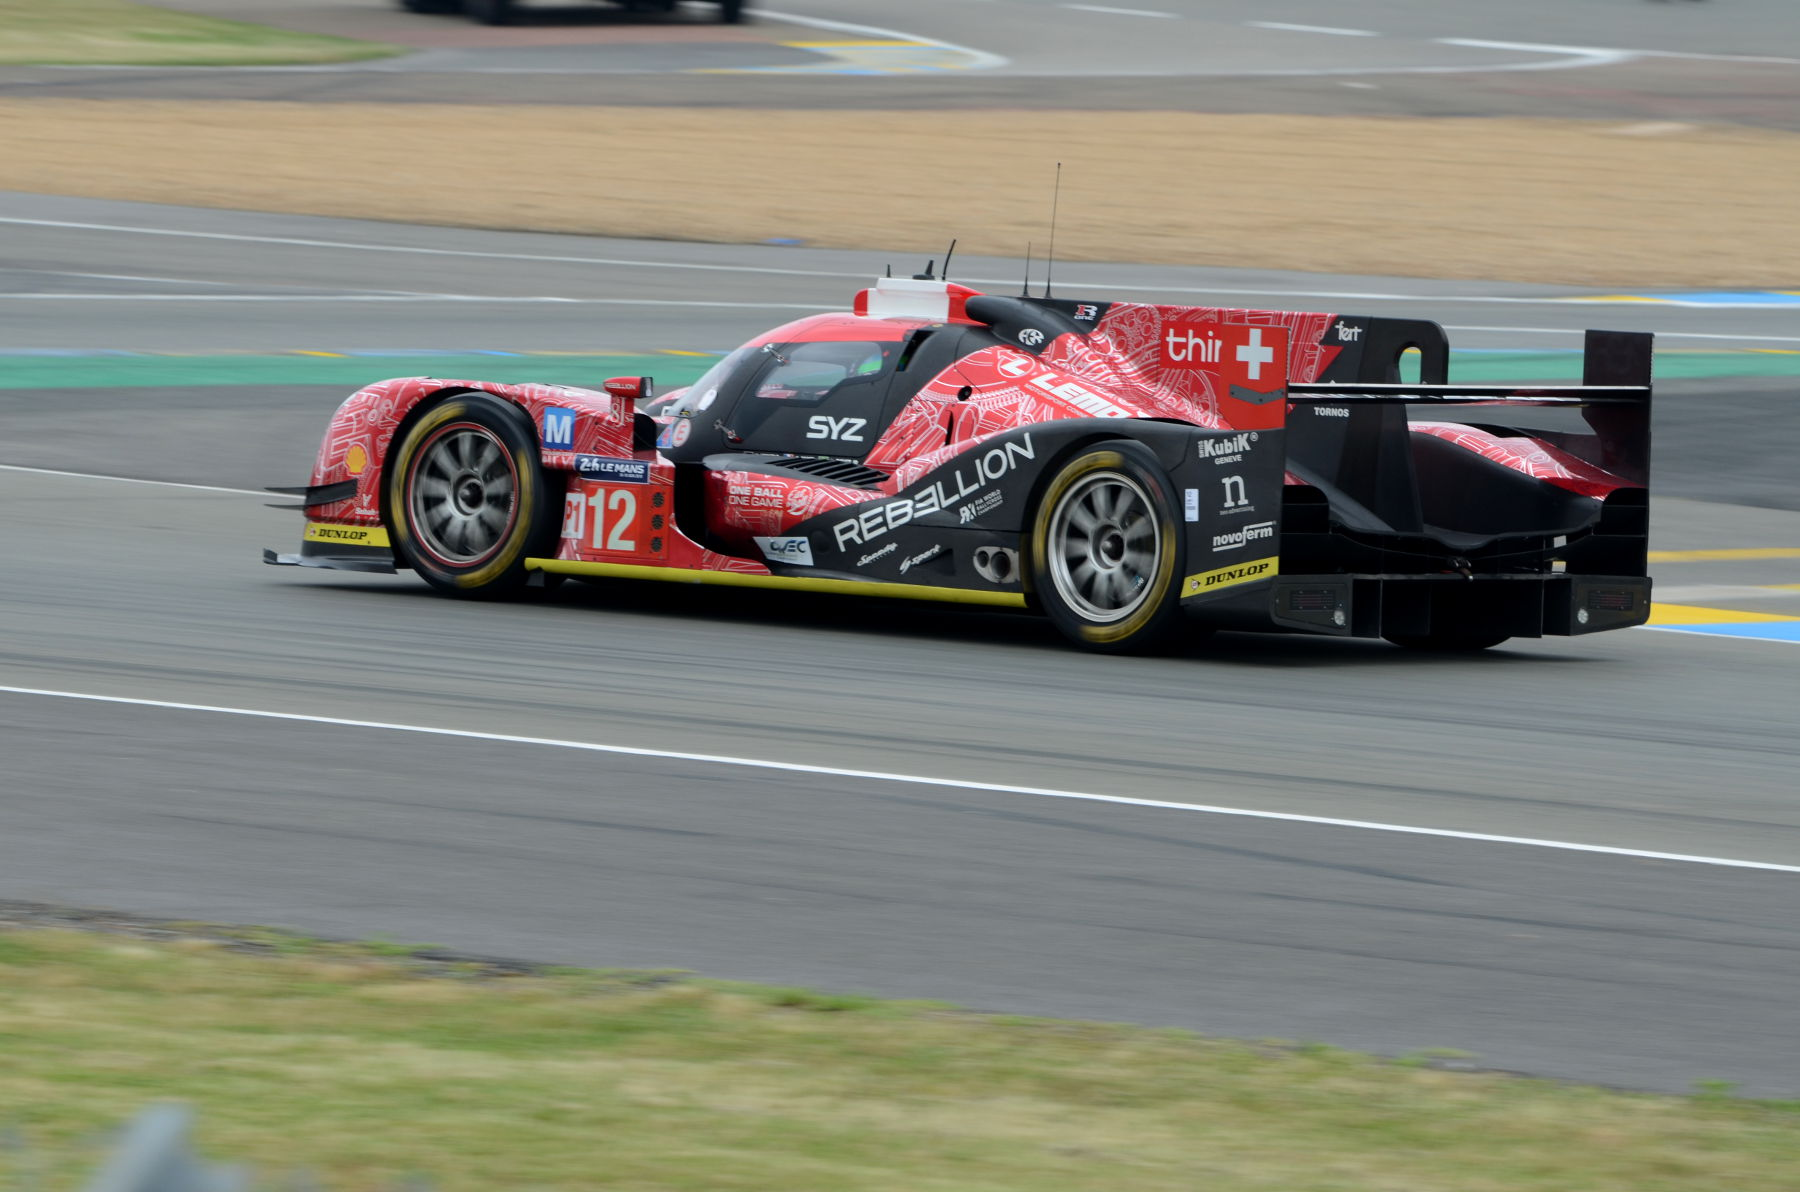 2016 Rebellion R One AER - Team Rebellion Racing